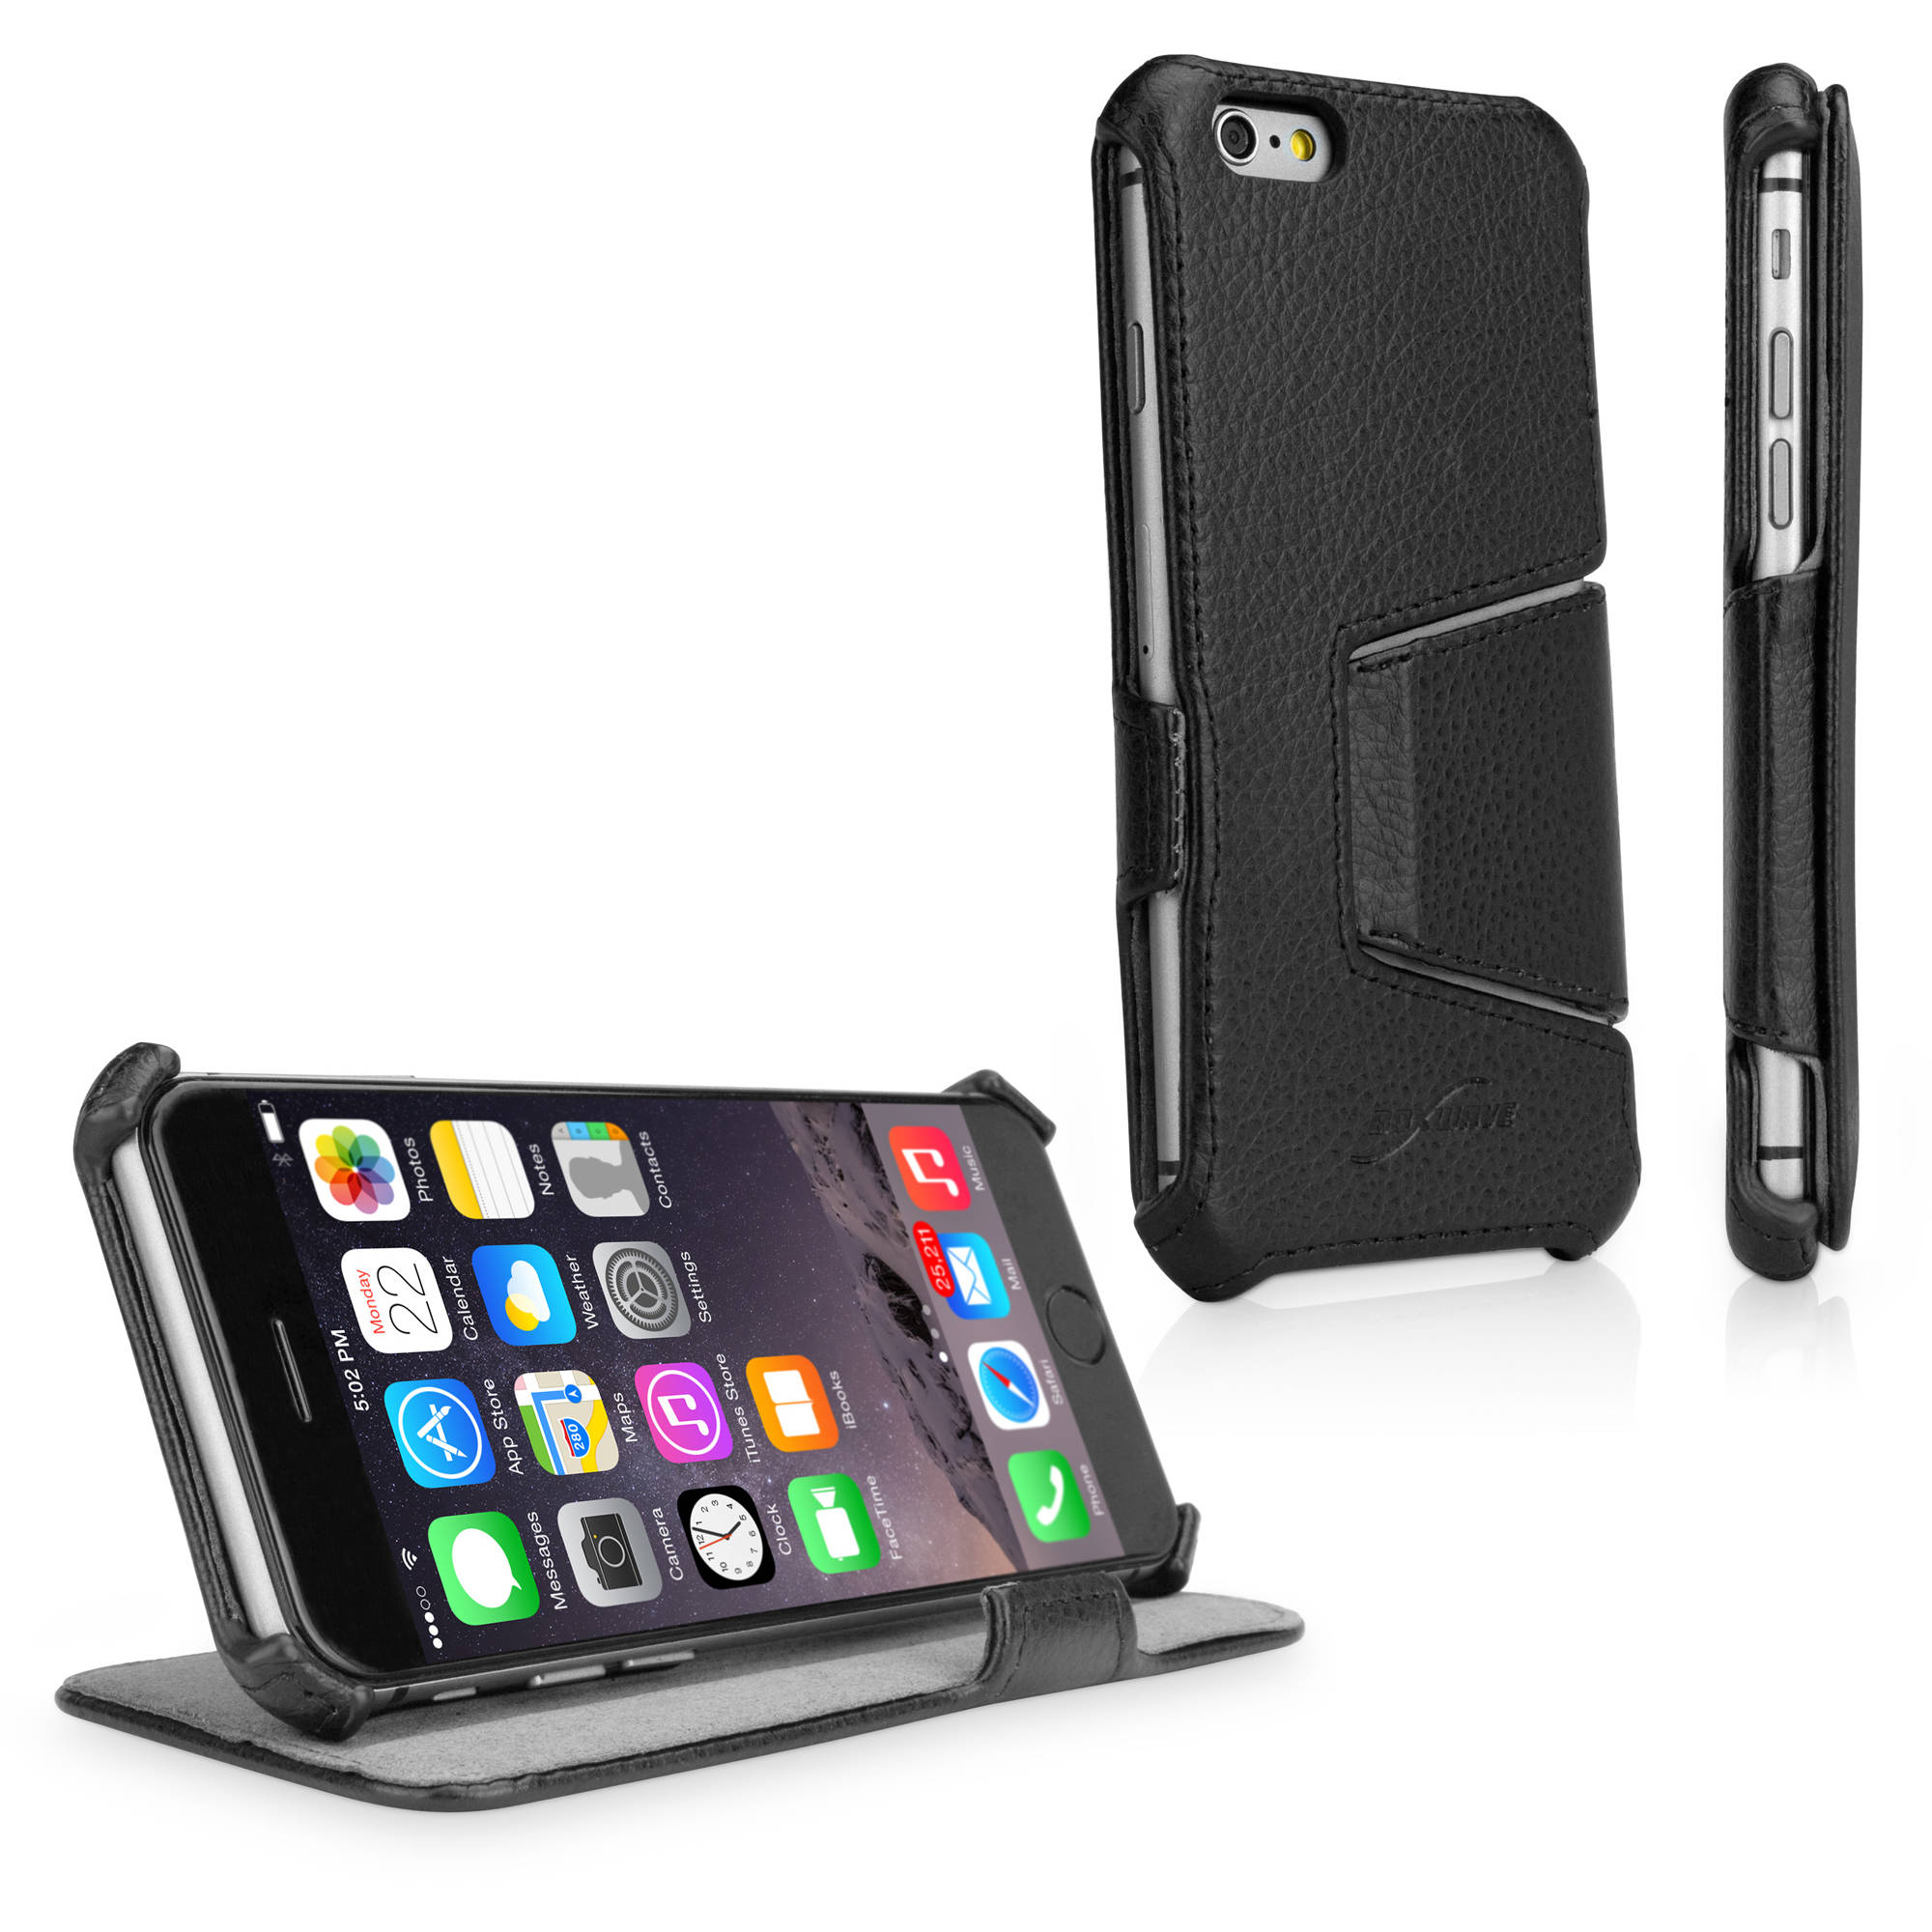 BoxWave Leather Book Jacket Folding Folio Cover for Apple iPhone 6/6s